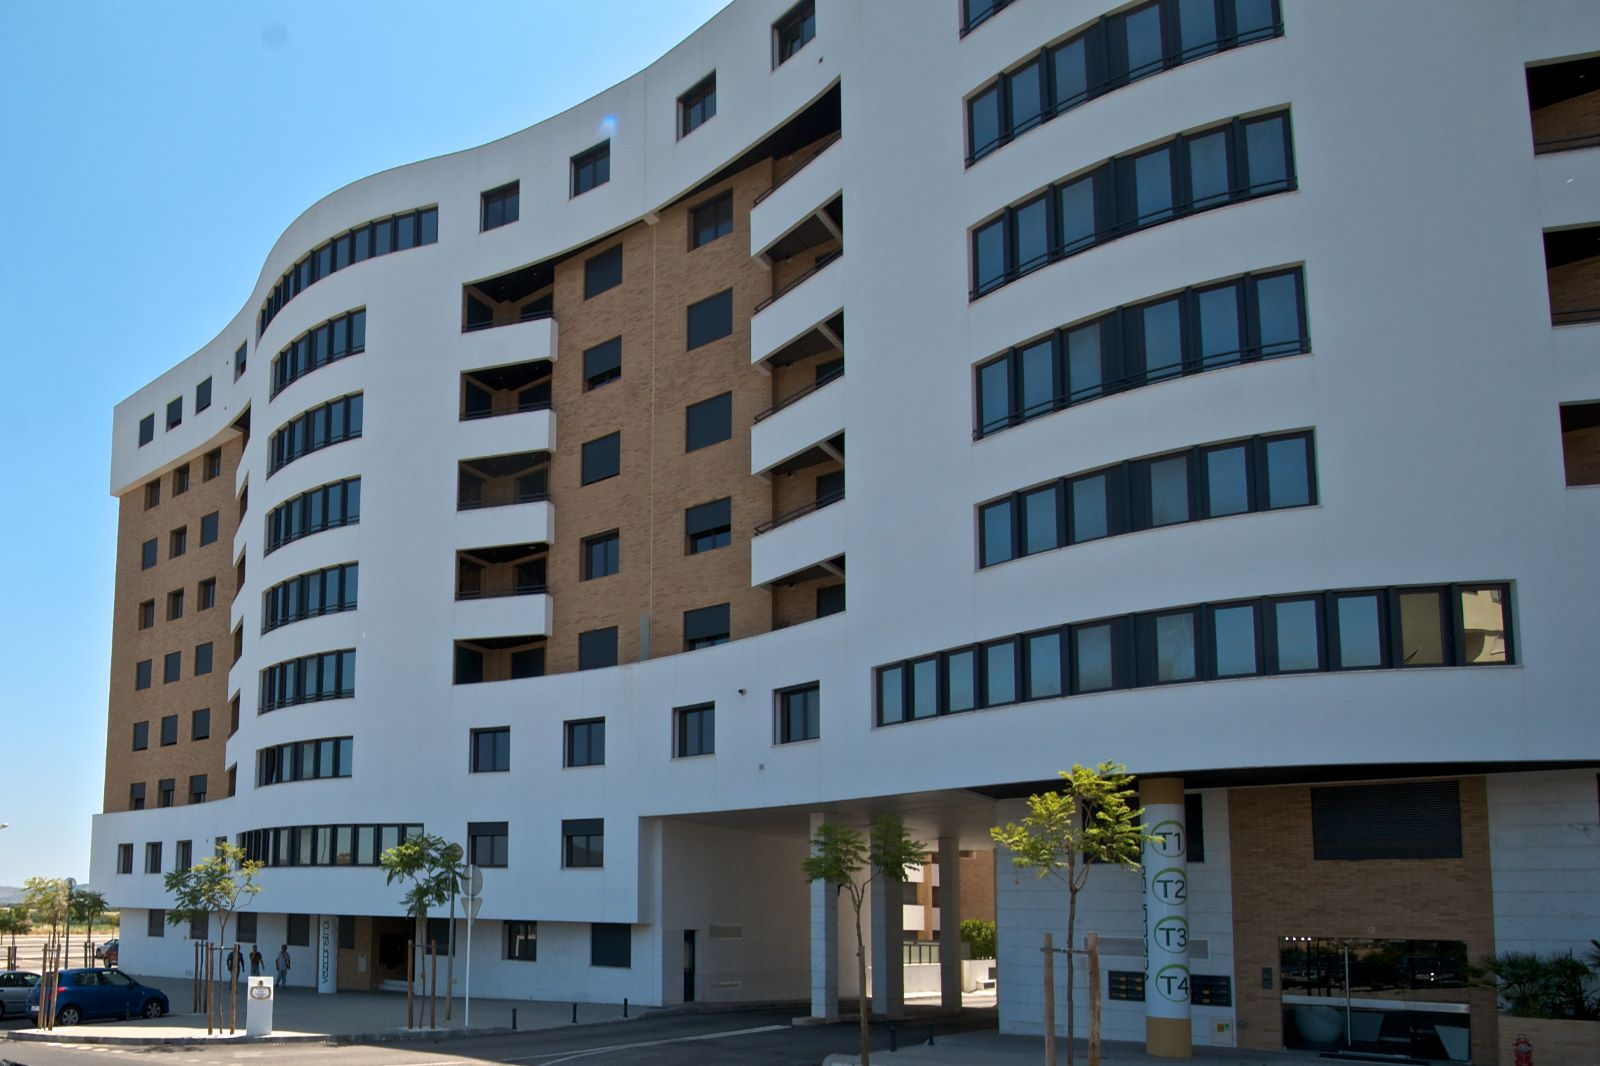 Condominium_for_sale_in_Loures_SMA7523